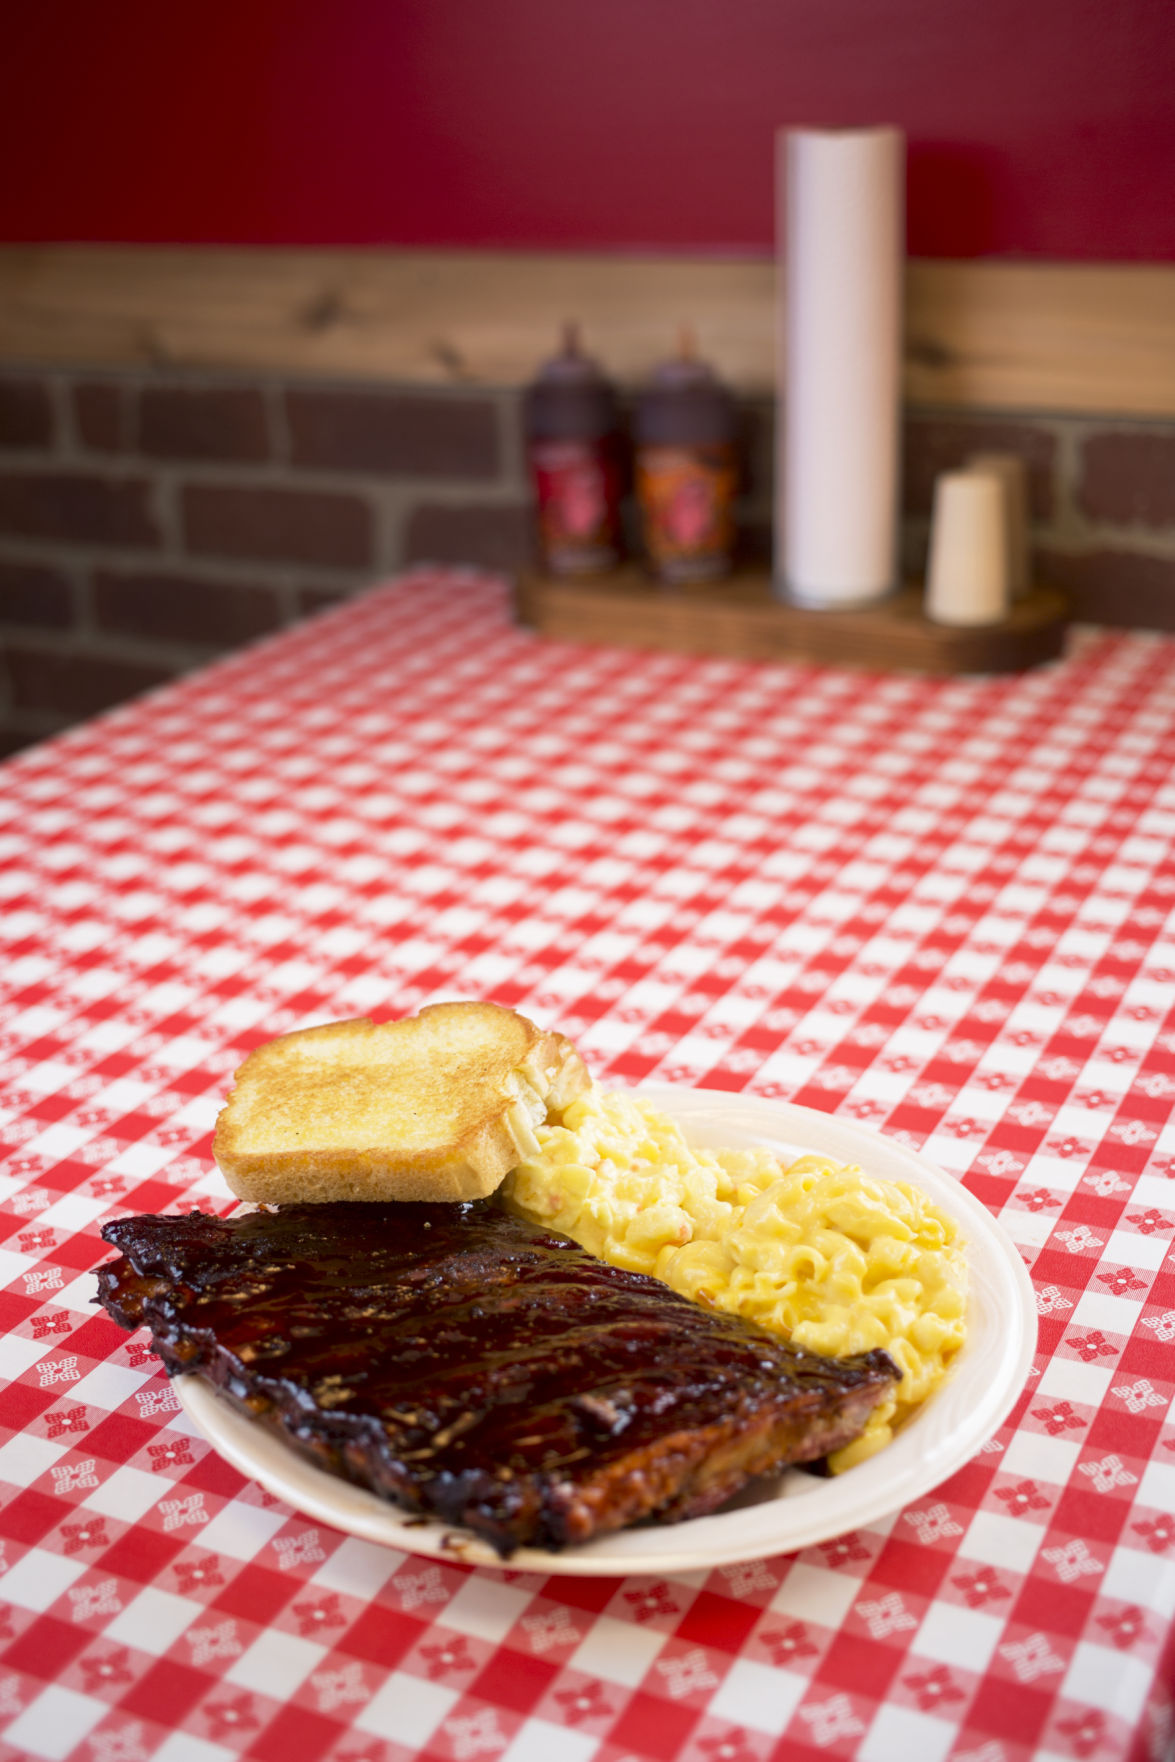 Review: Diners will go Hog Wild for ribs and more | Dining